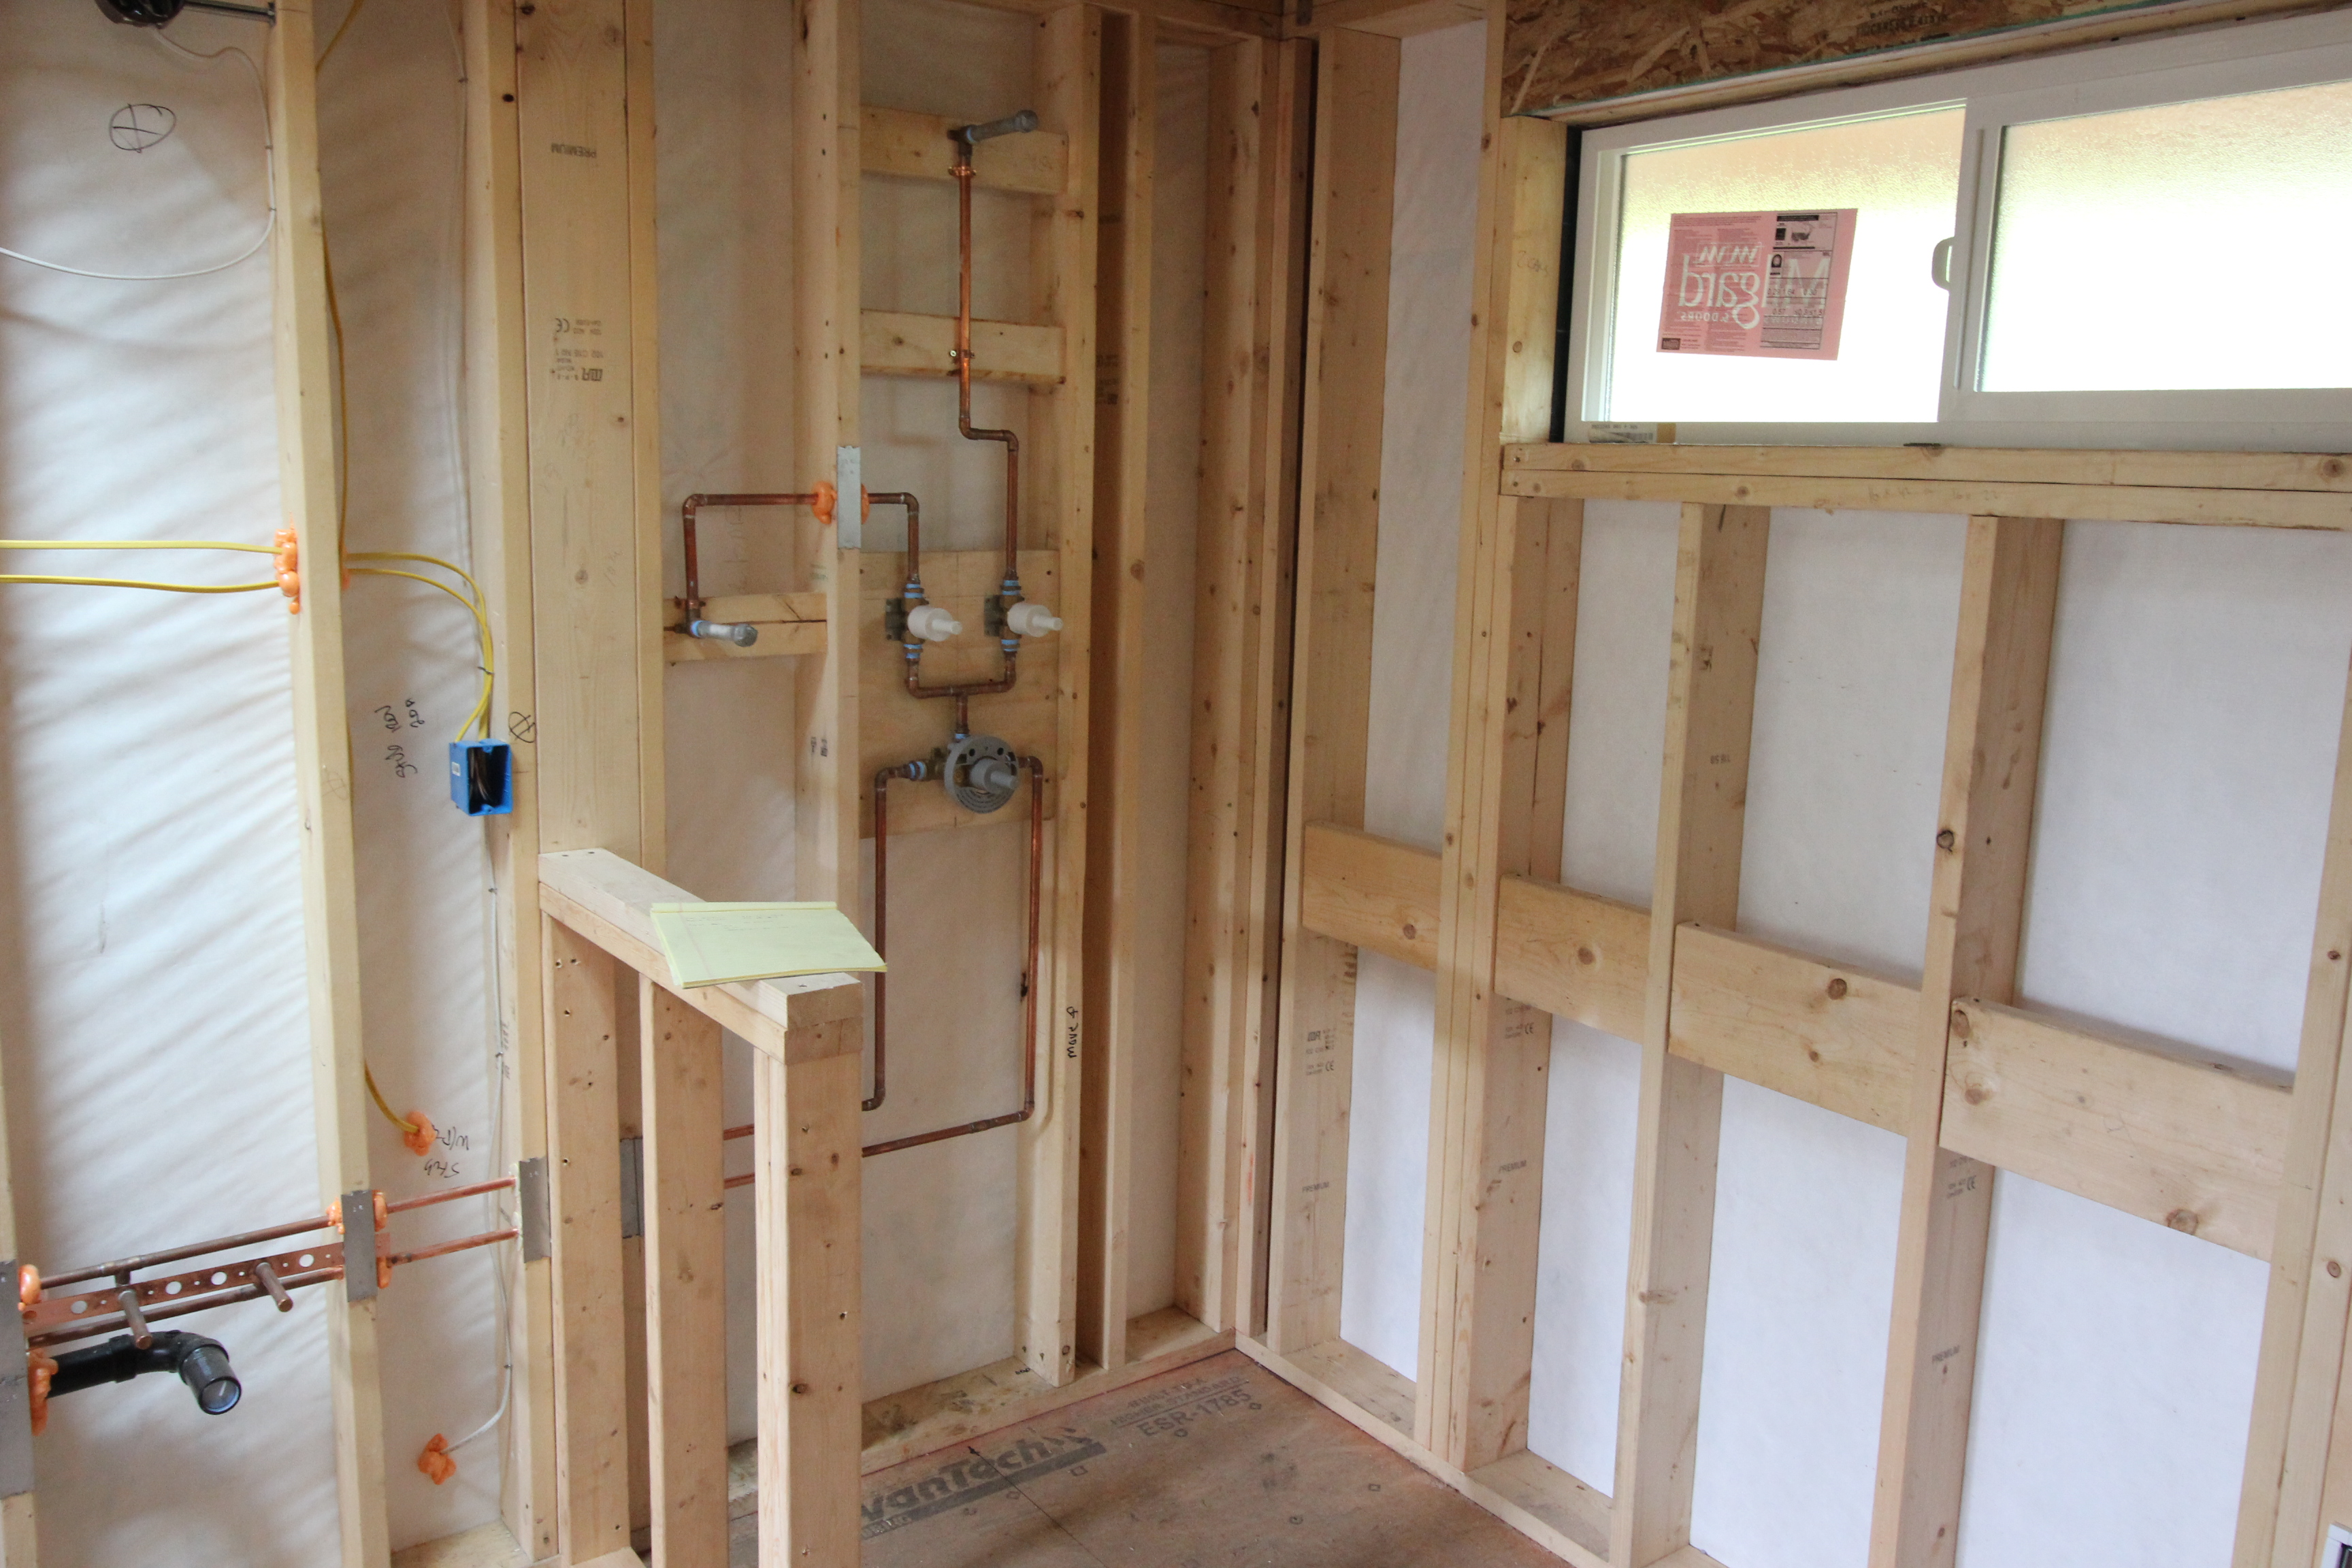 Plumbing rough in home run solutions for New construction plumbing rough in